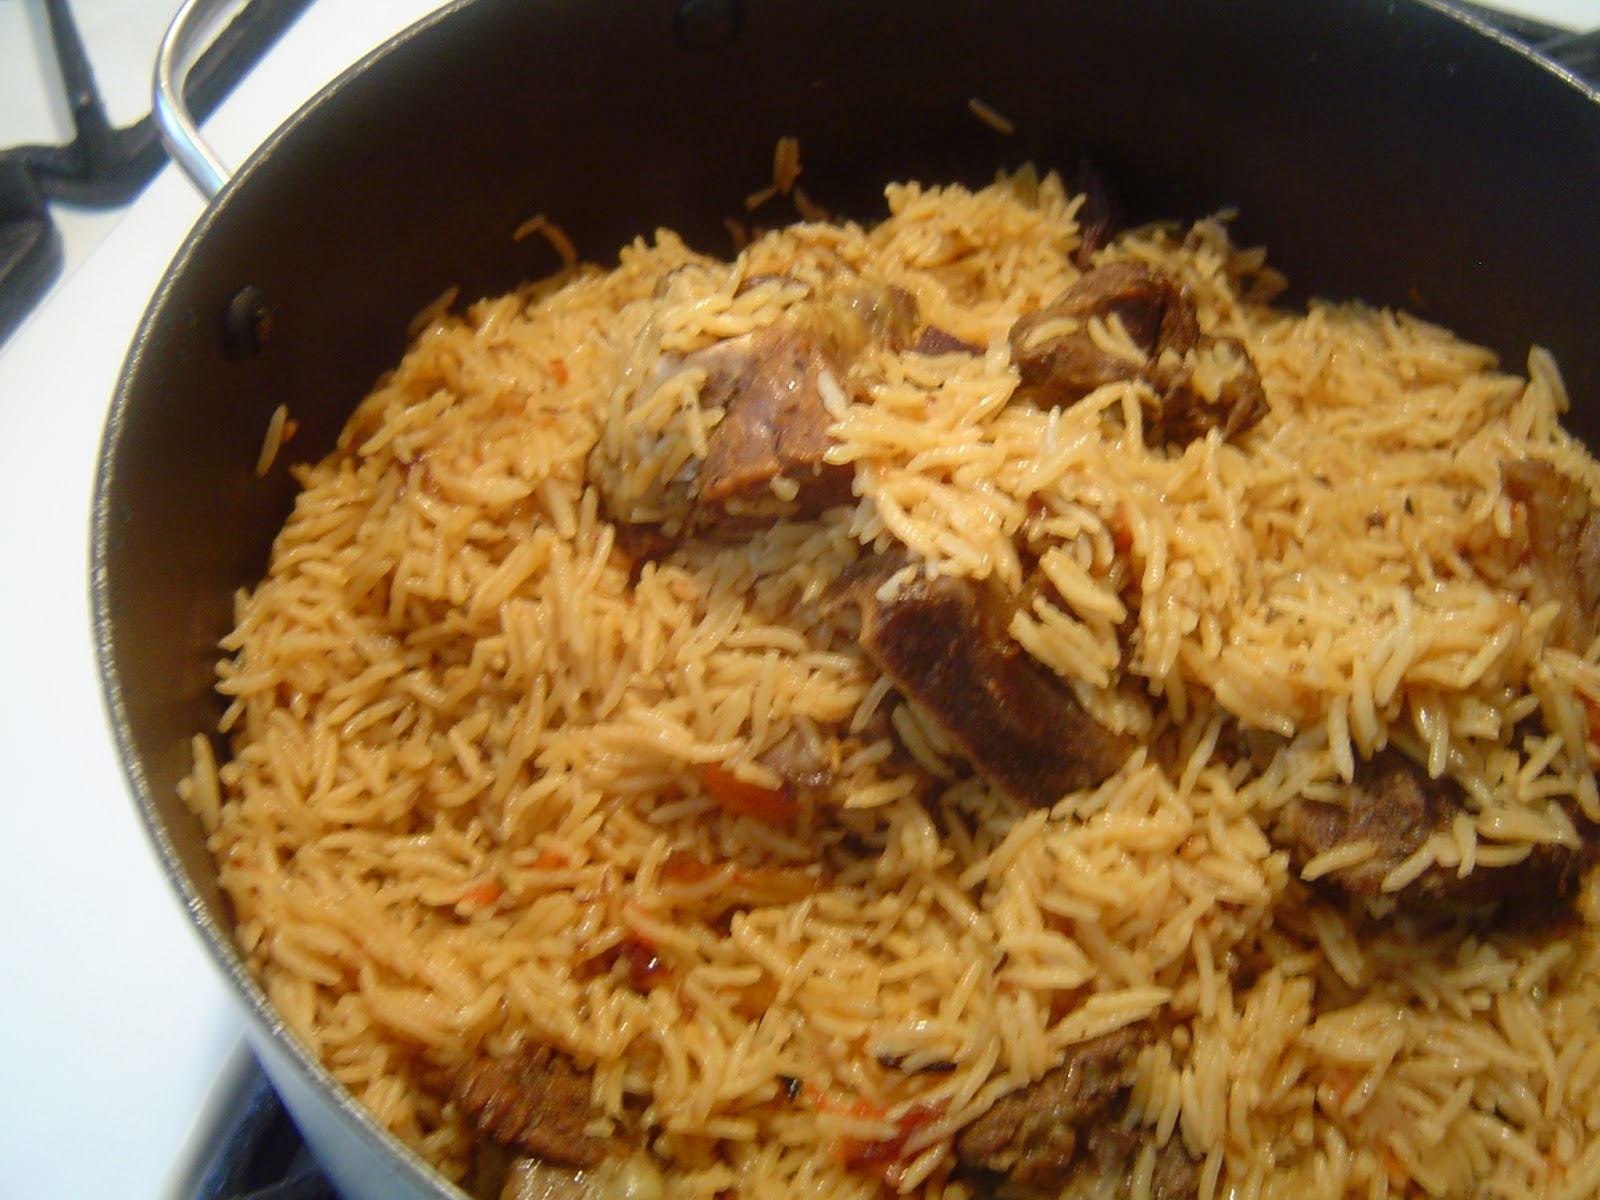 How to Make Pakistani Pulao (Chicken and Rice Dish) How to Make Pakistani Pulao (Chicken and Rice Dish) new images